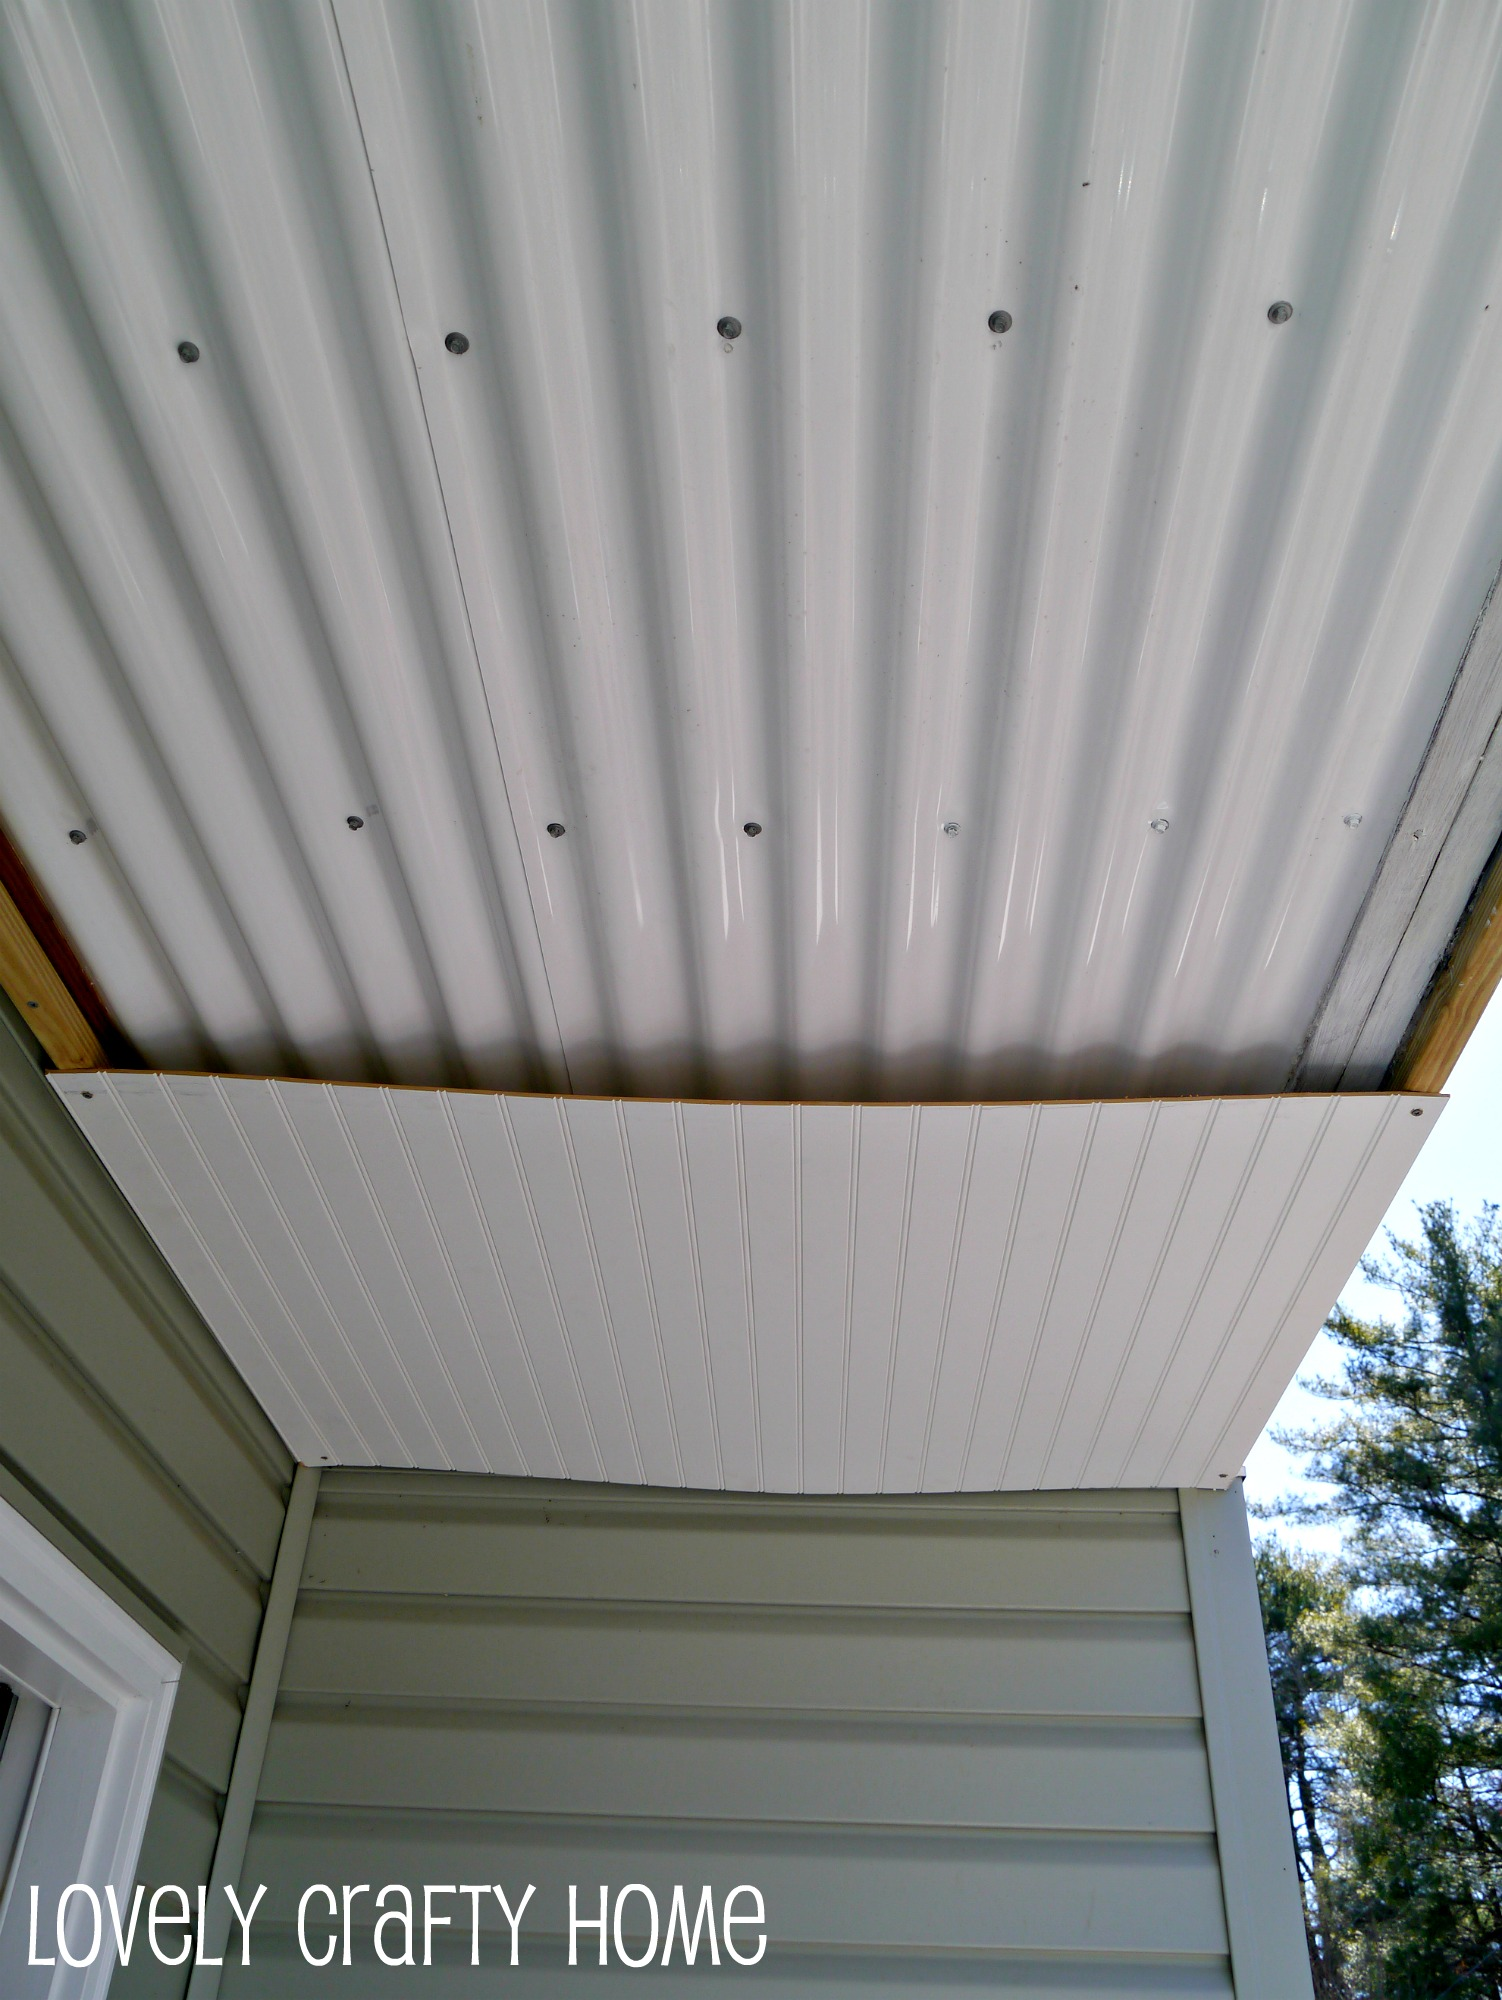 epic underdeck ceiling project mostly done